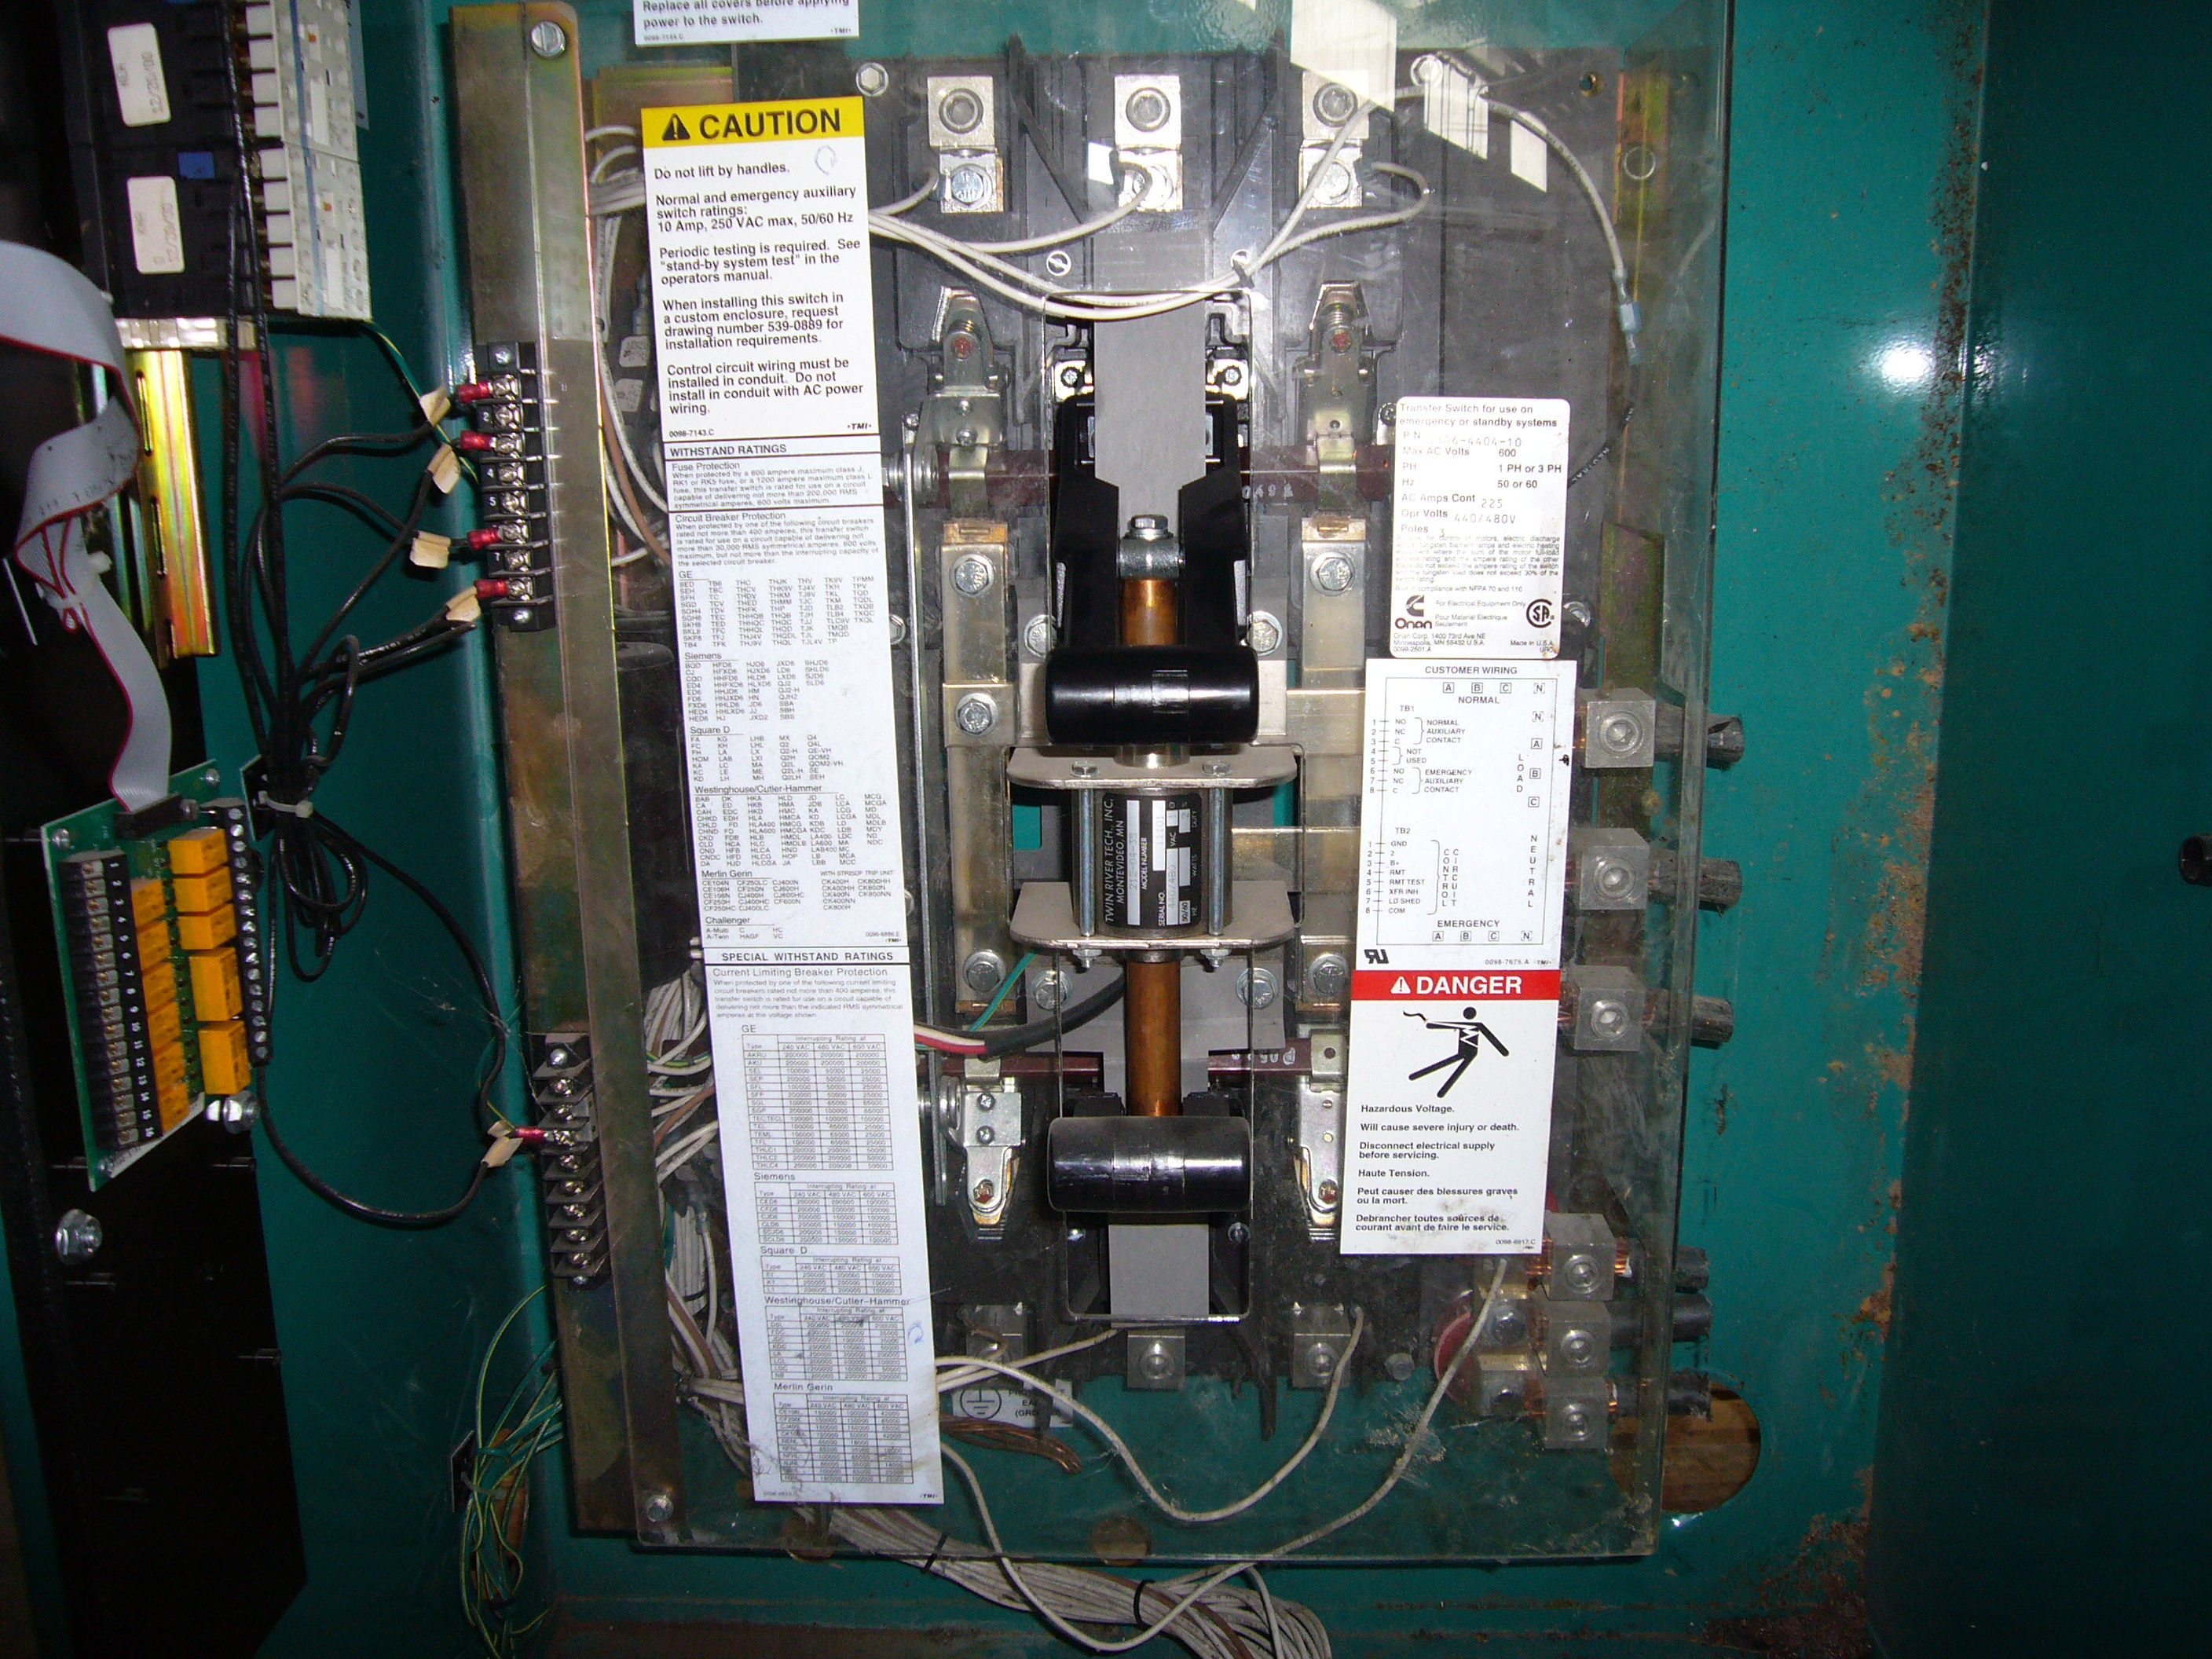 file cummins onan transfer switch model no otpcb 4494345 jpg rh commons wikimedia org onan generator transfer switch wiring diagram Generac Transfer Switch Wiring Diagram